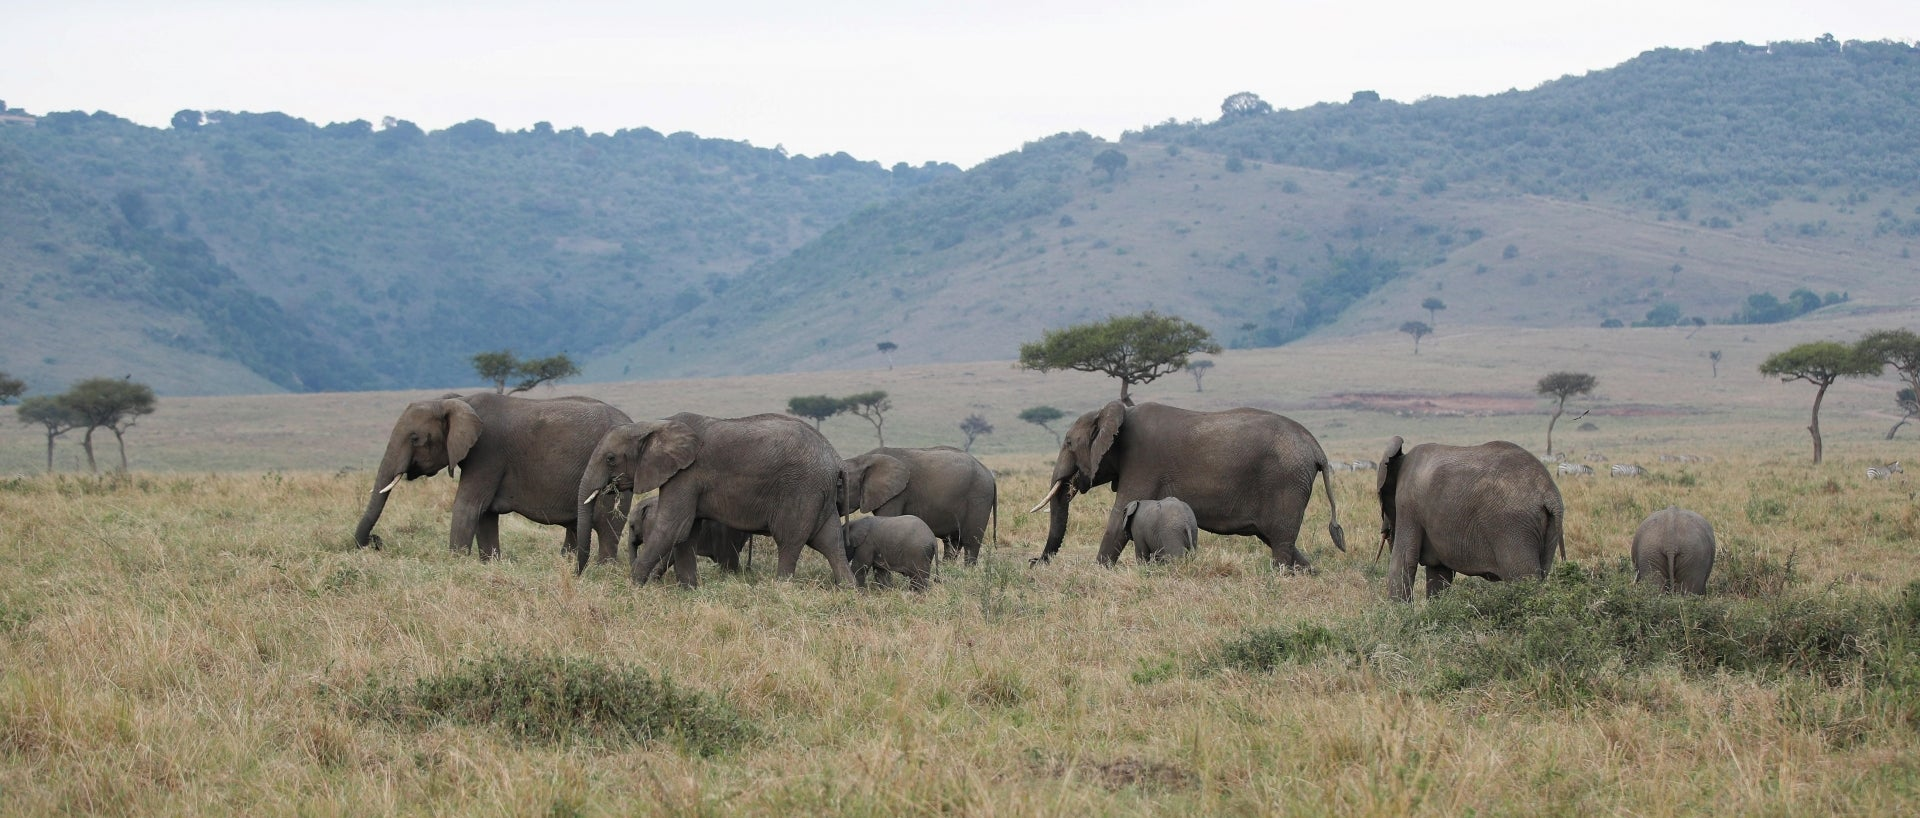 A photo taken on Aug. 30, 2021 shows some of the new baby elephants accounted for in the recent census.